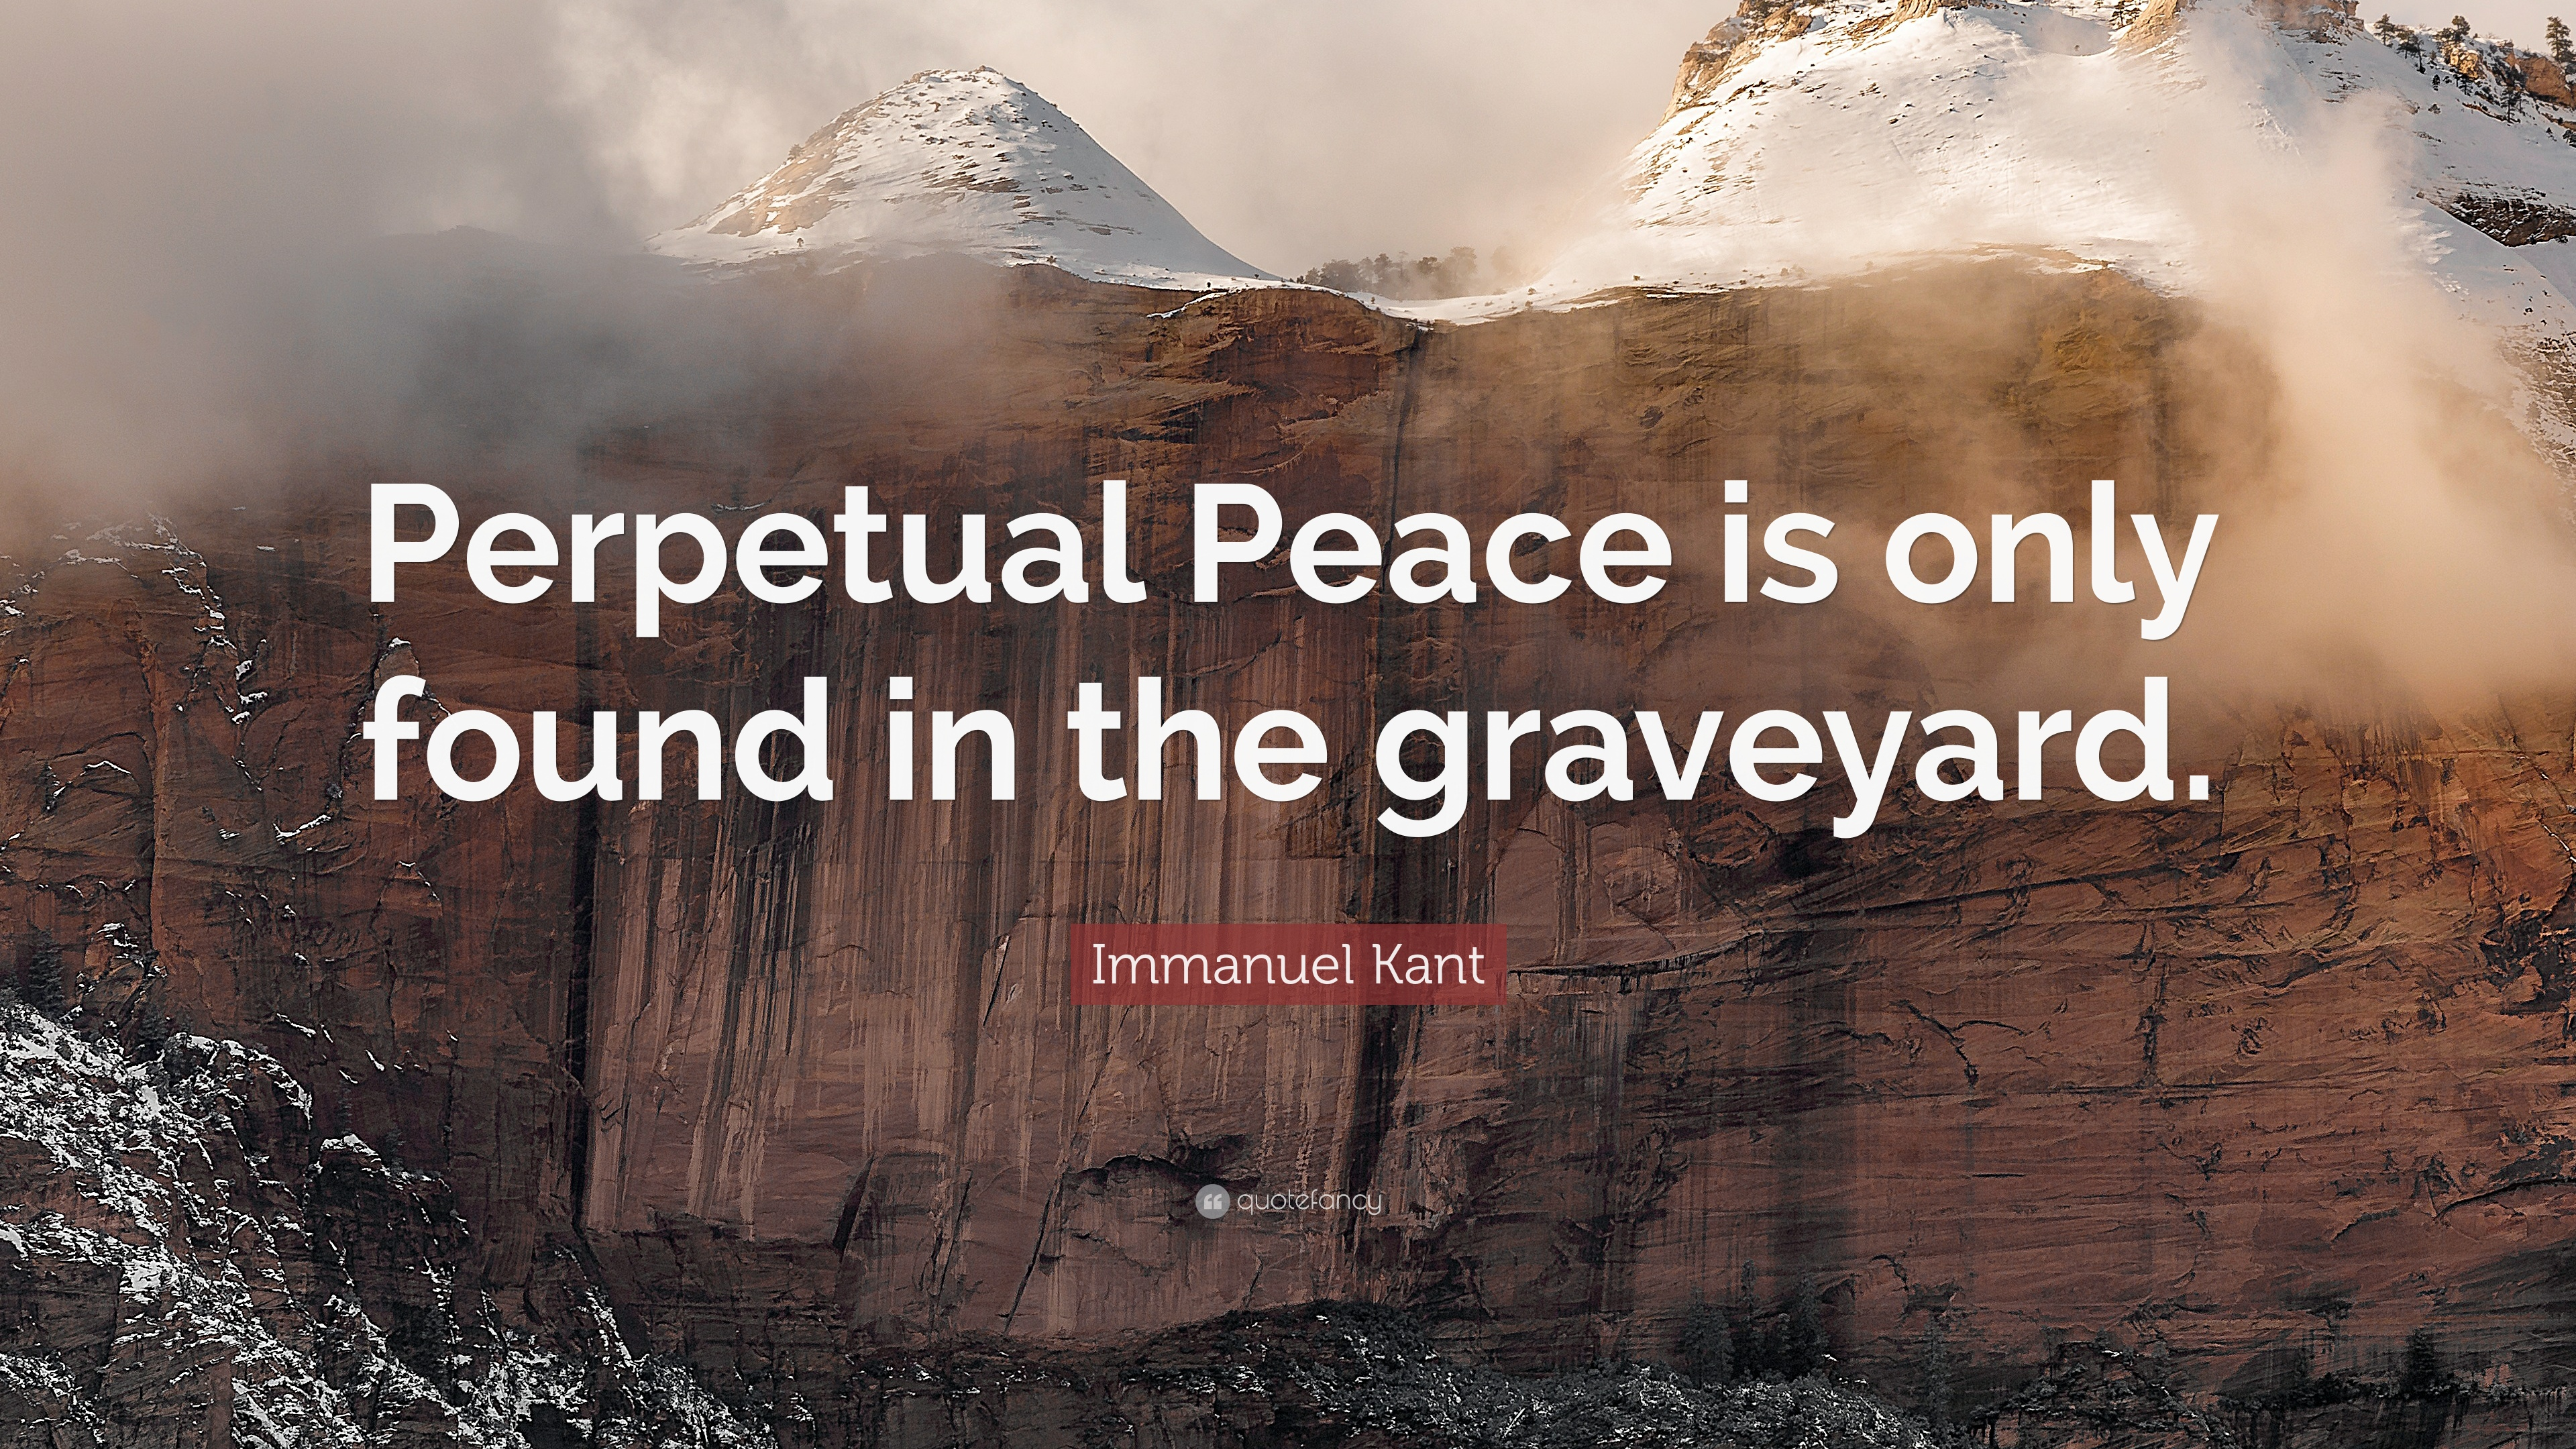 Immanuel Kant Quote Wallpaper Immanuel Kant Quote Perpetual Peace Is Only Found In The